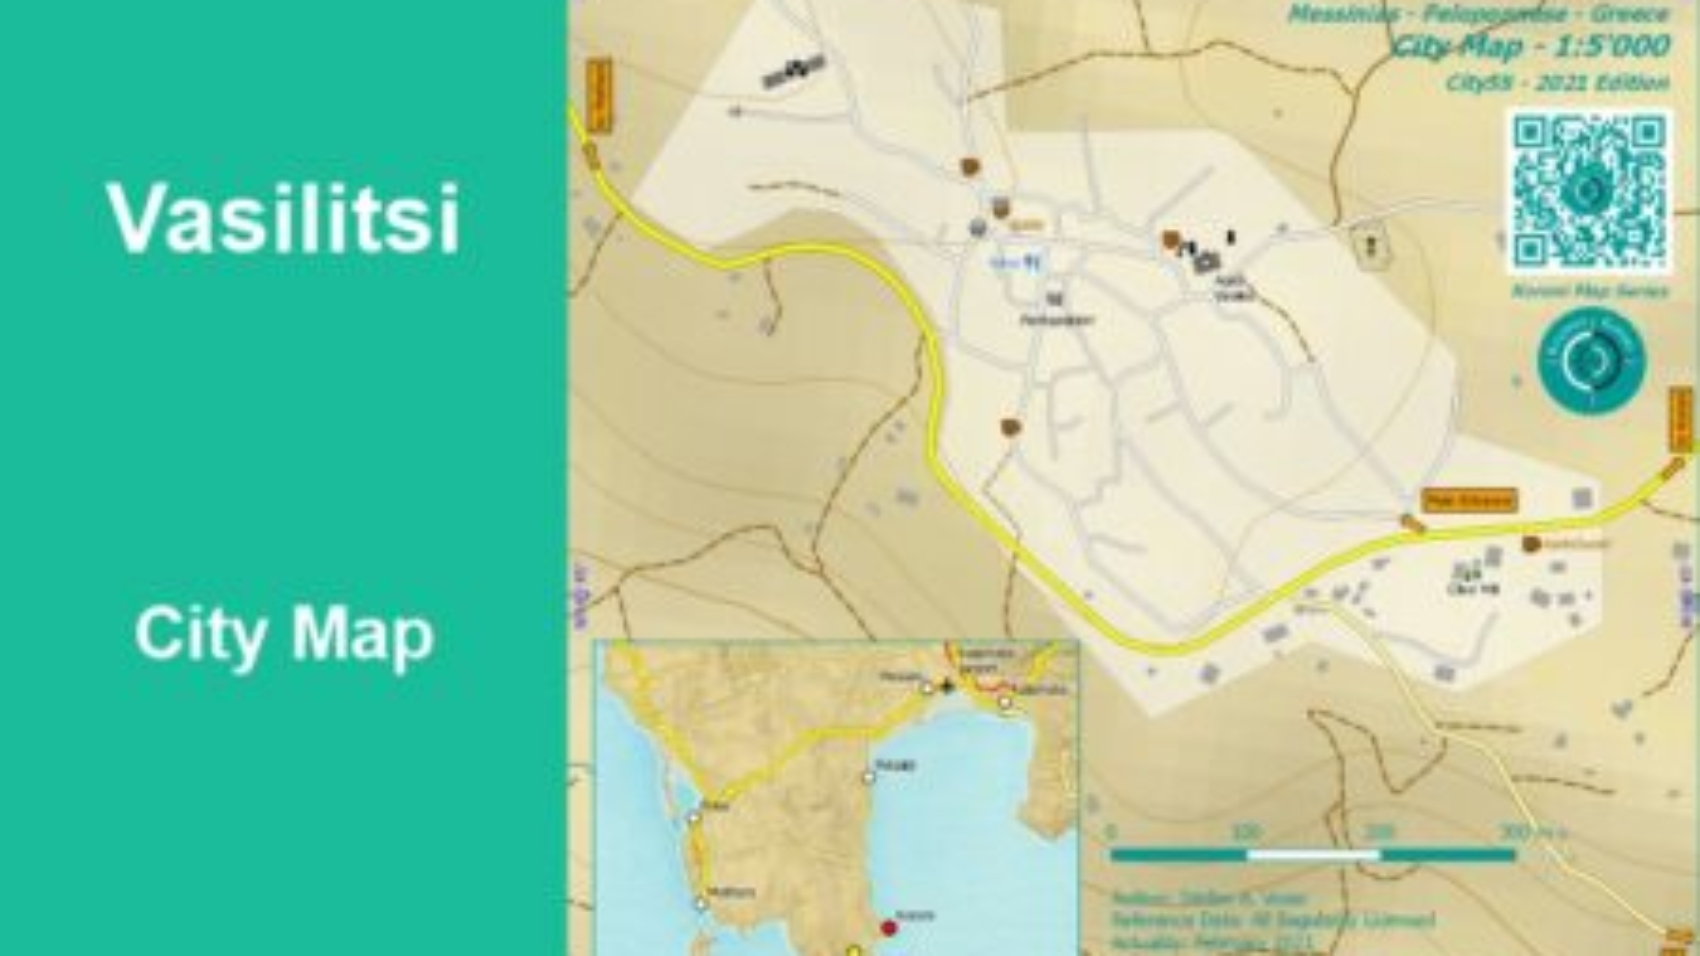 Vasilitsi City Map